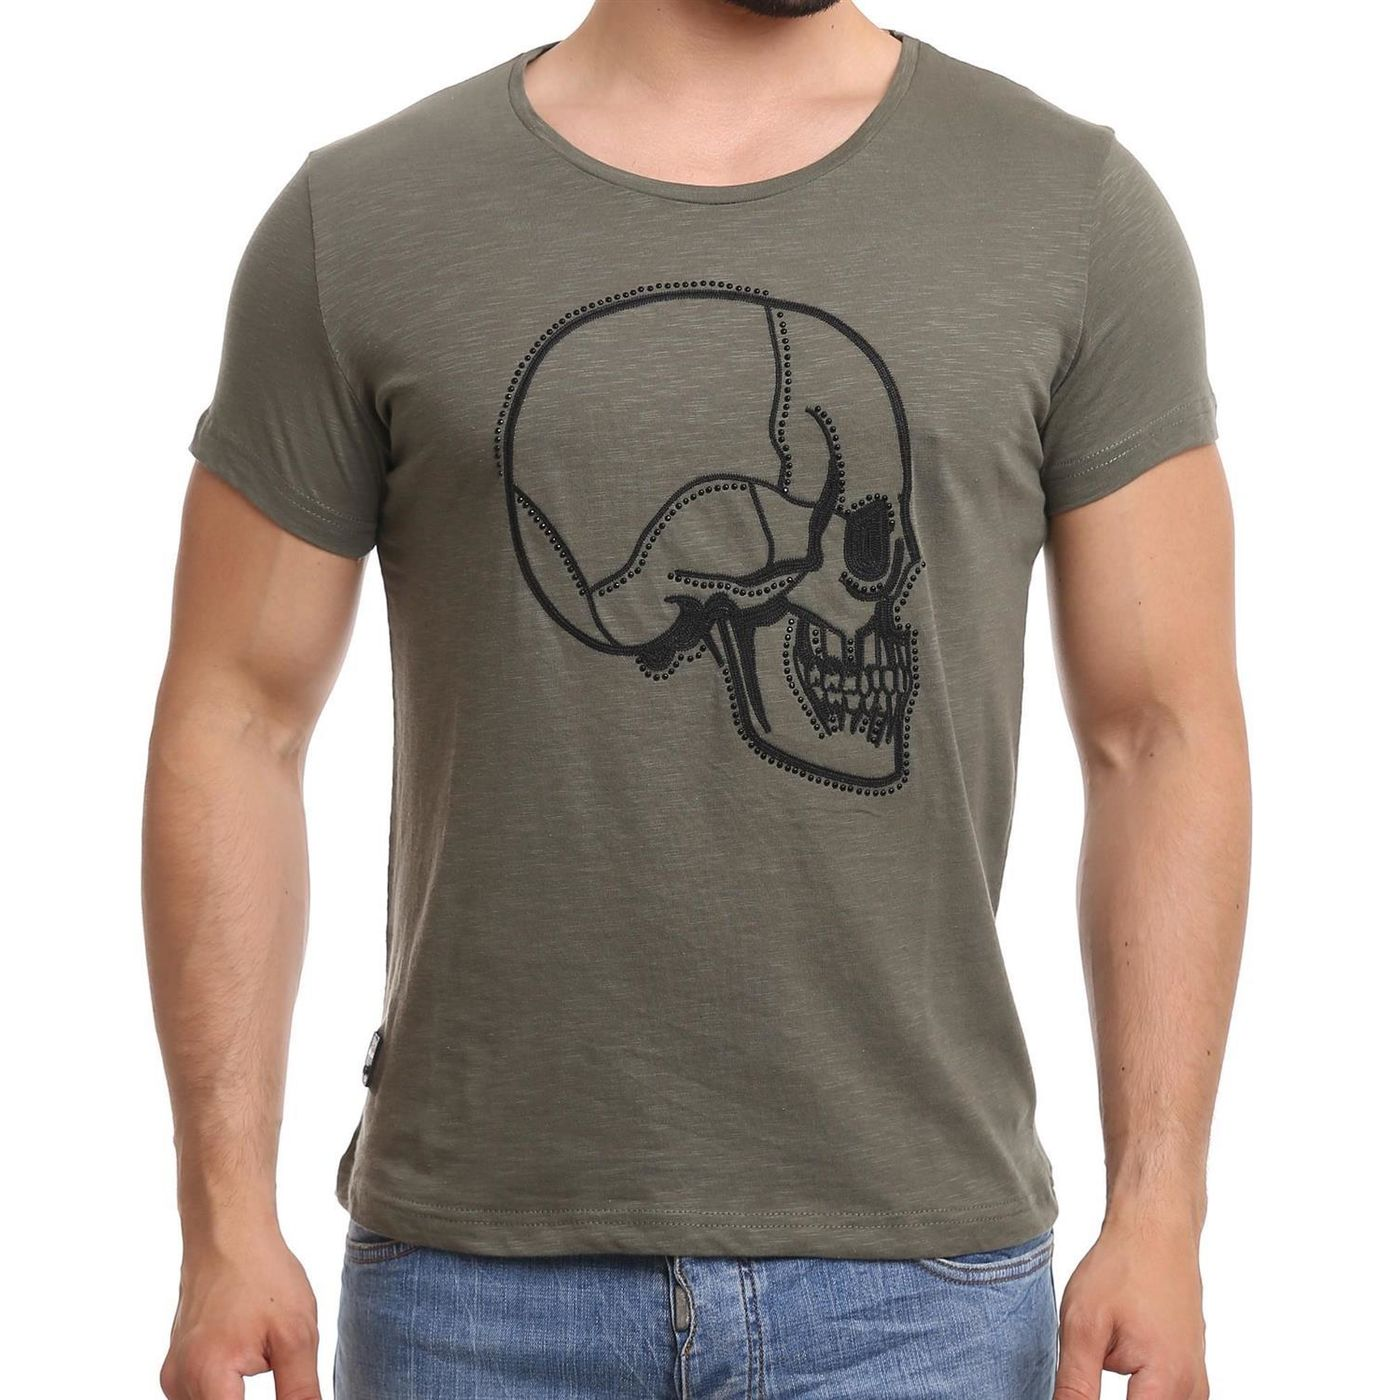 redbridge herren t shirt mit strasssteinen und stitched skull totenkopf motv farbe khaki 11 99. Black Bedroom Furniture Sets. Home Design Ideas